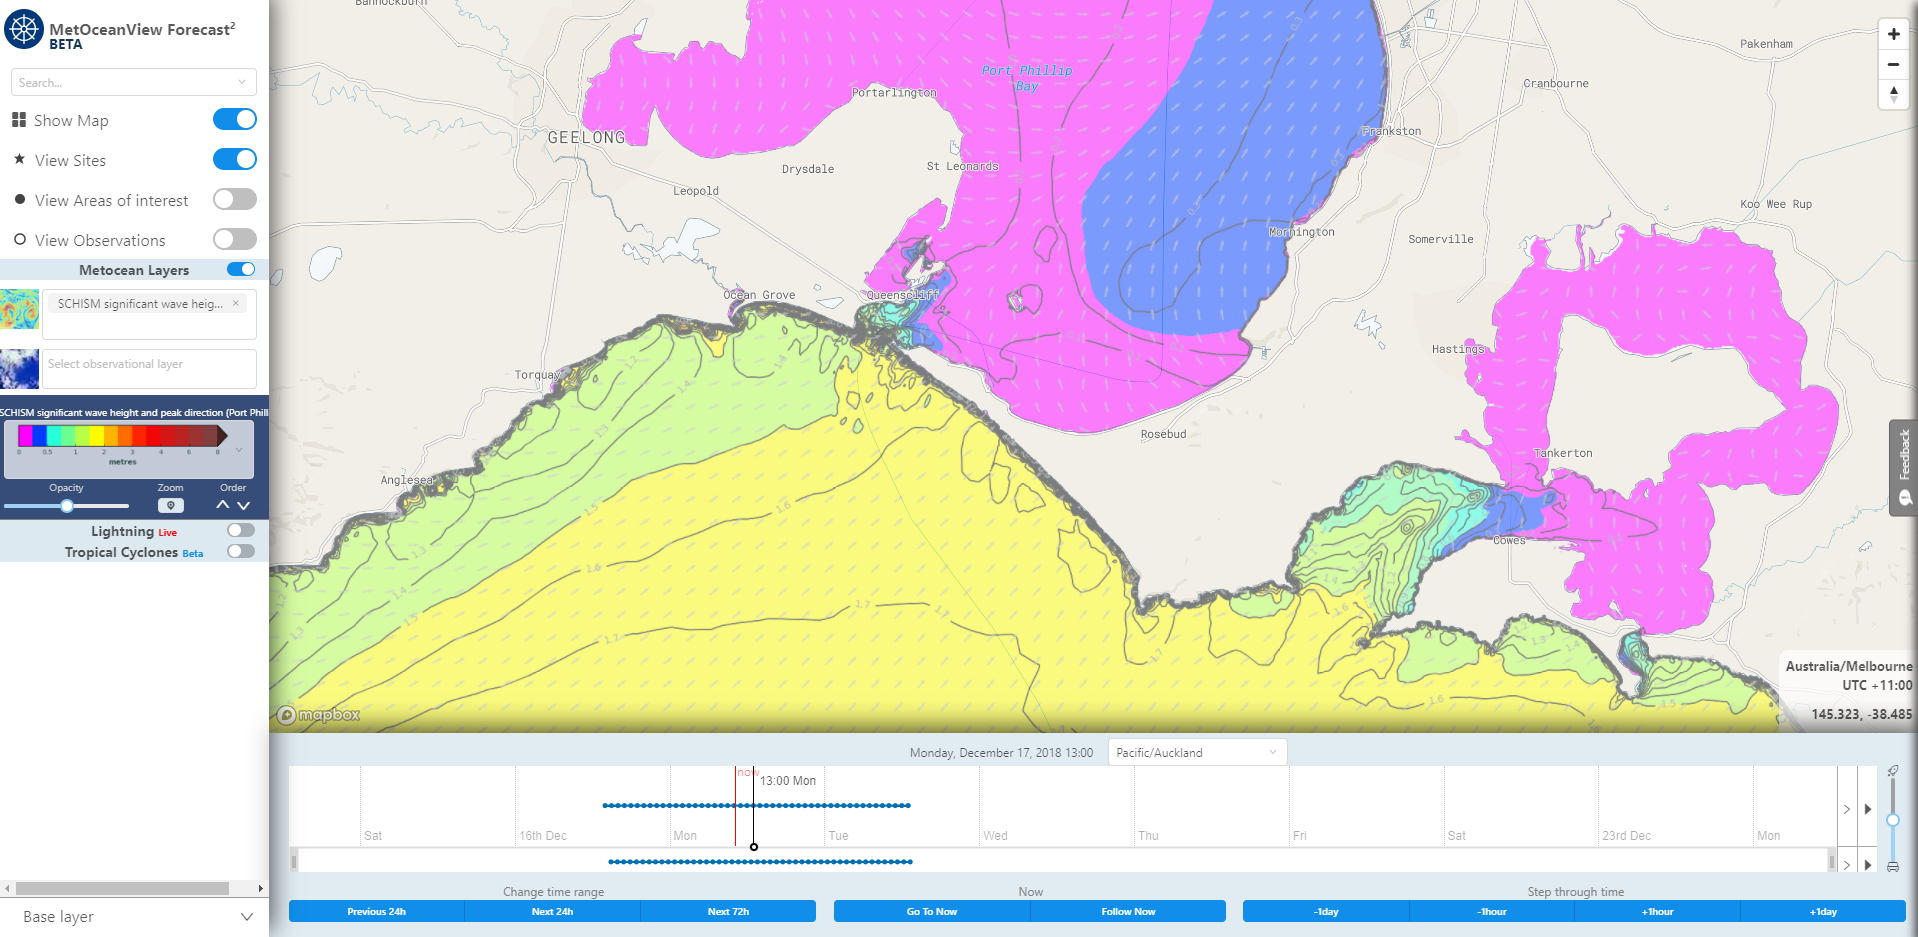 Map layer of SCHISM significant wave height and peak direction forecast. Image from MetOceanView.